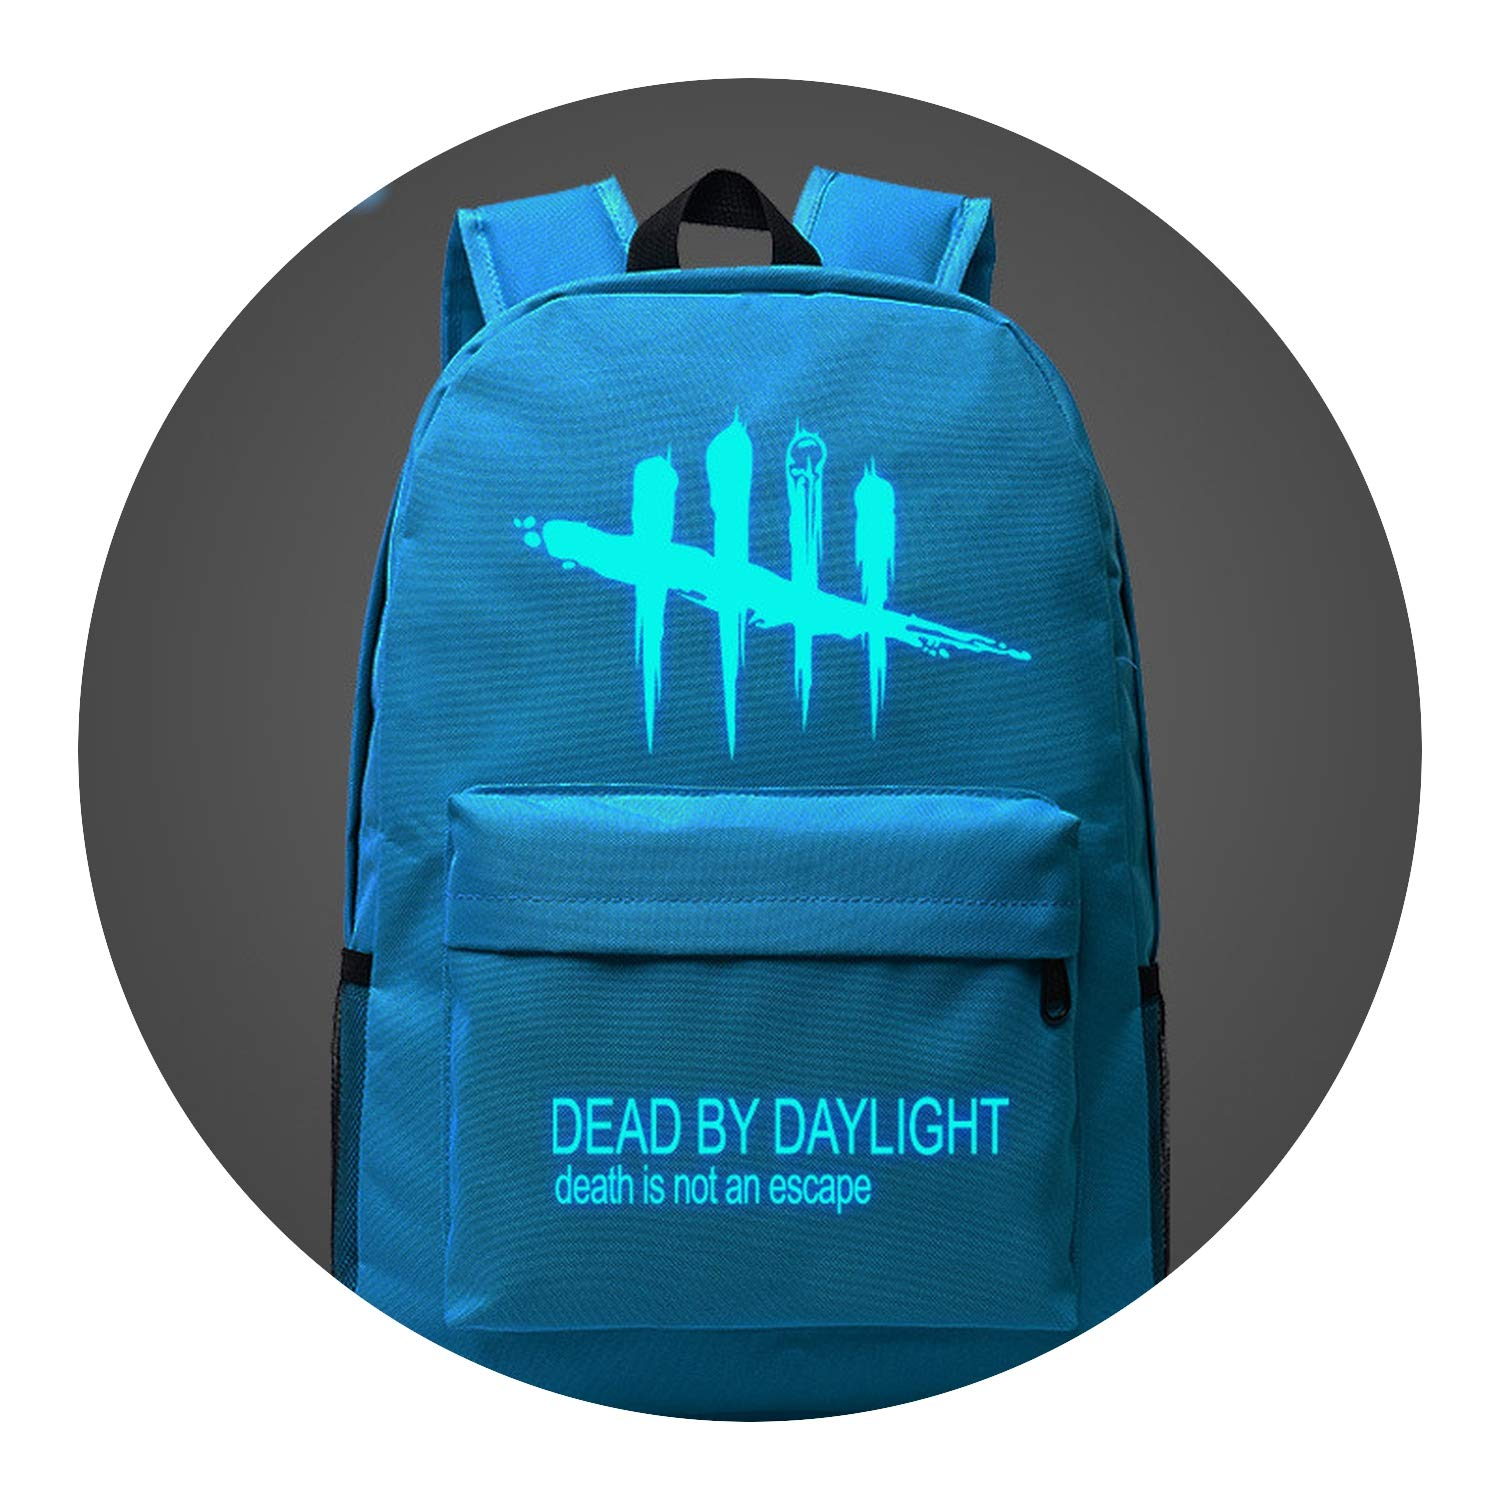 With a dash of 05 One Size Backpack Cool Game Backpack Dead by Daylight Luminous Backpacks Bags,BP7801